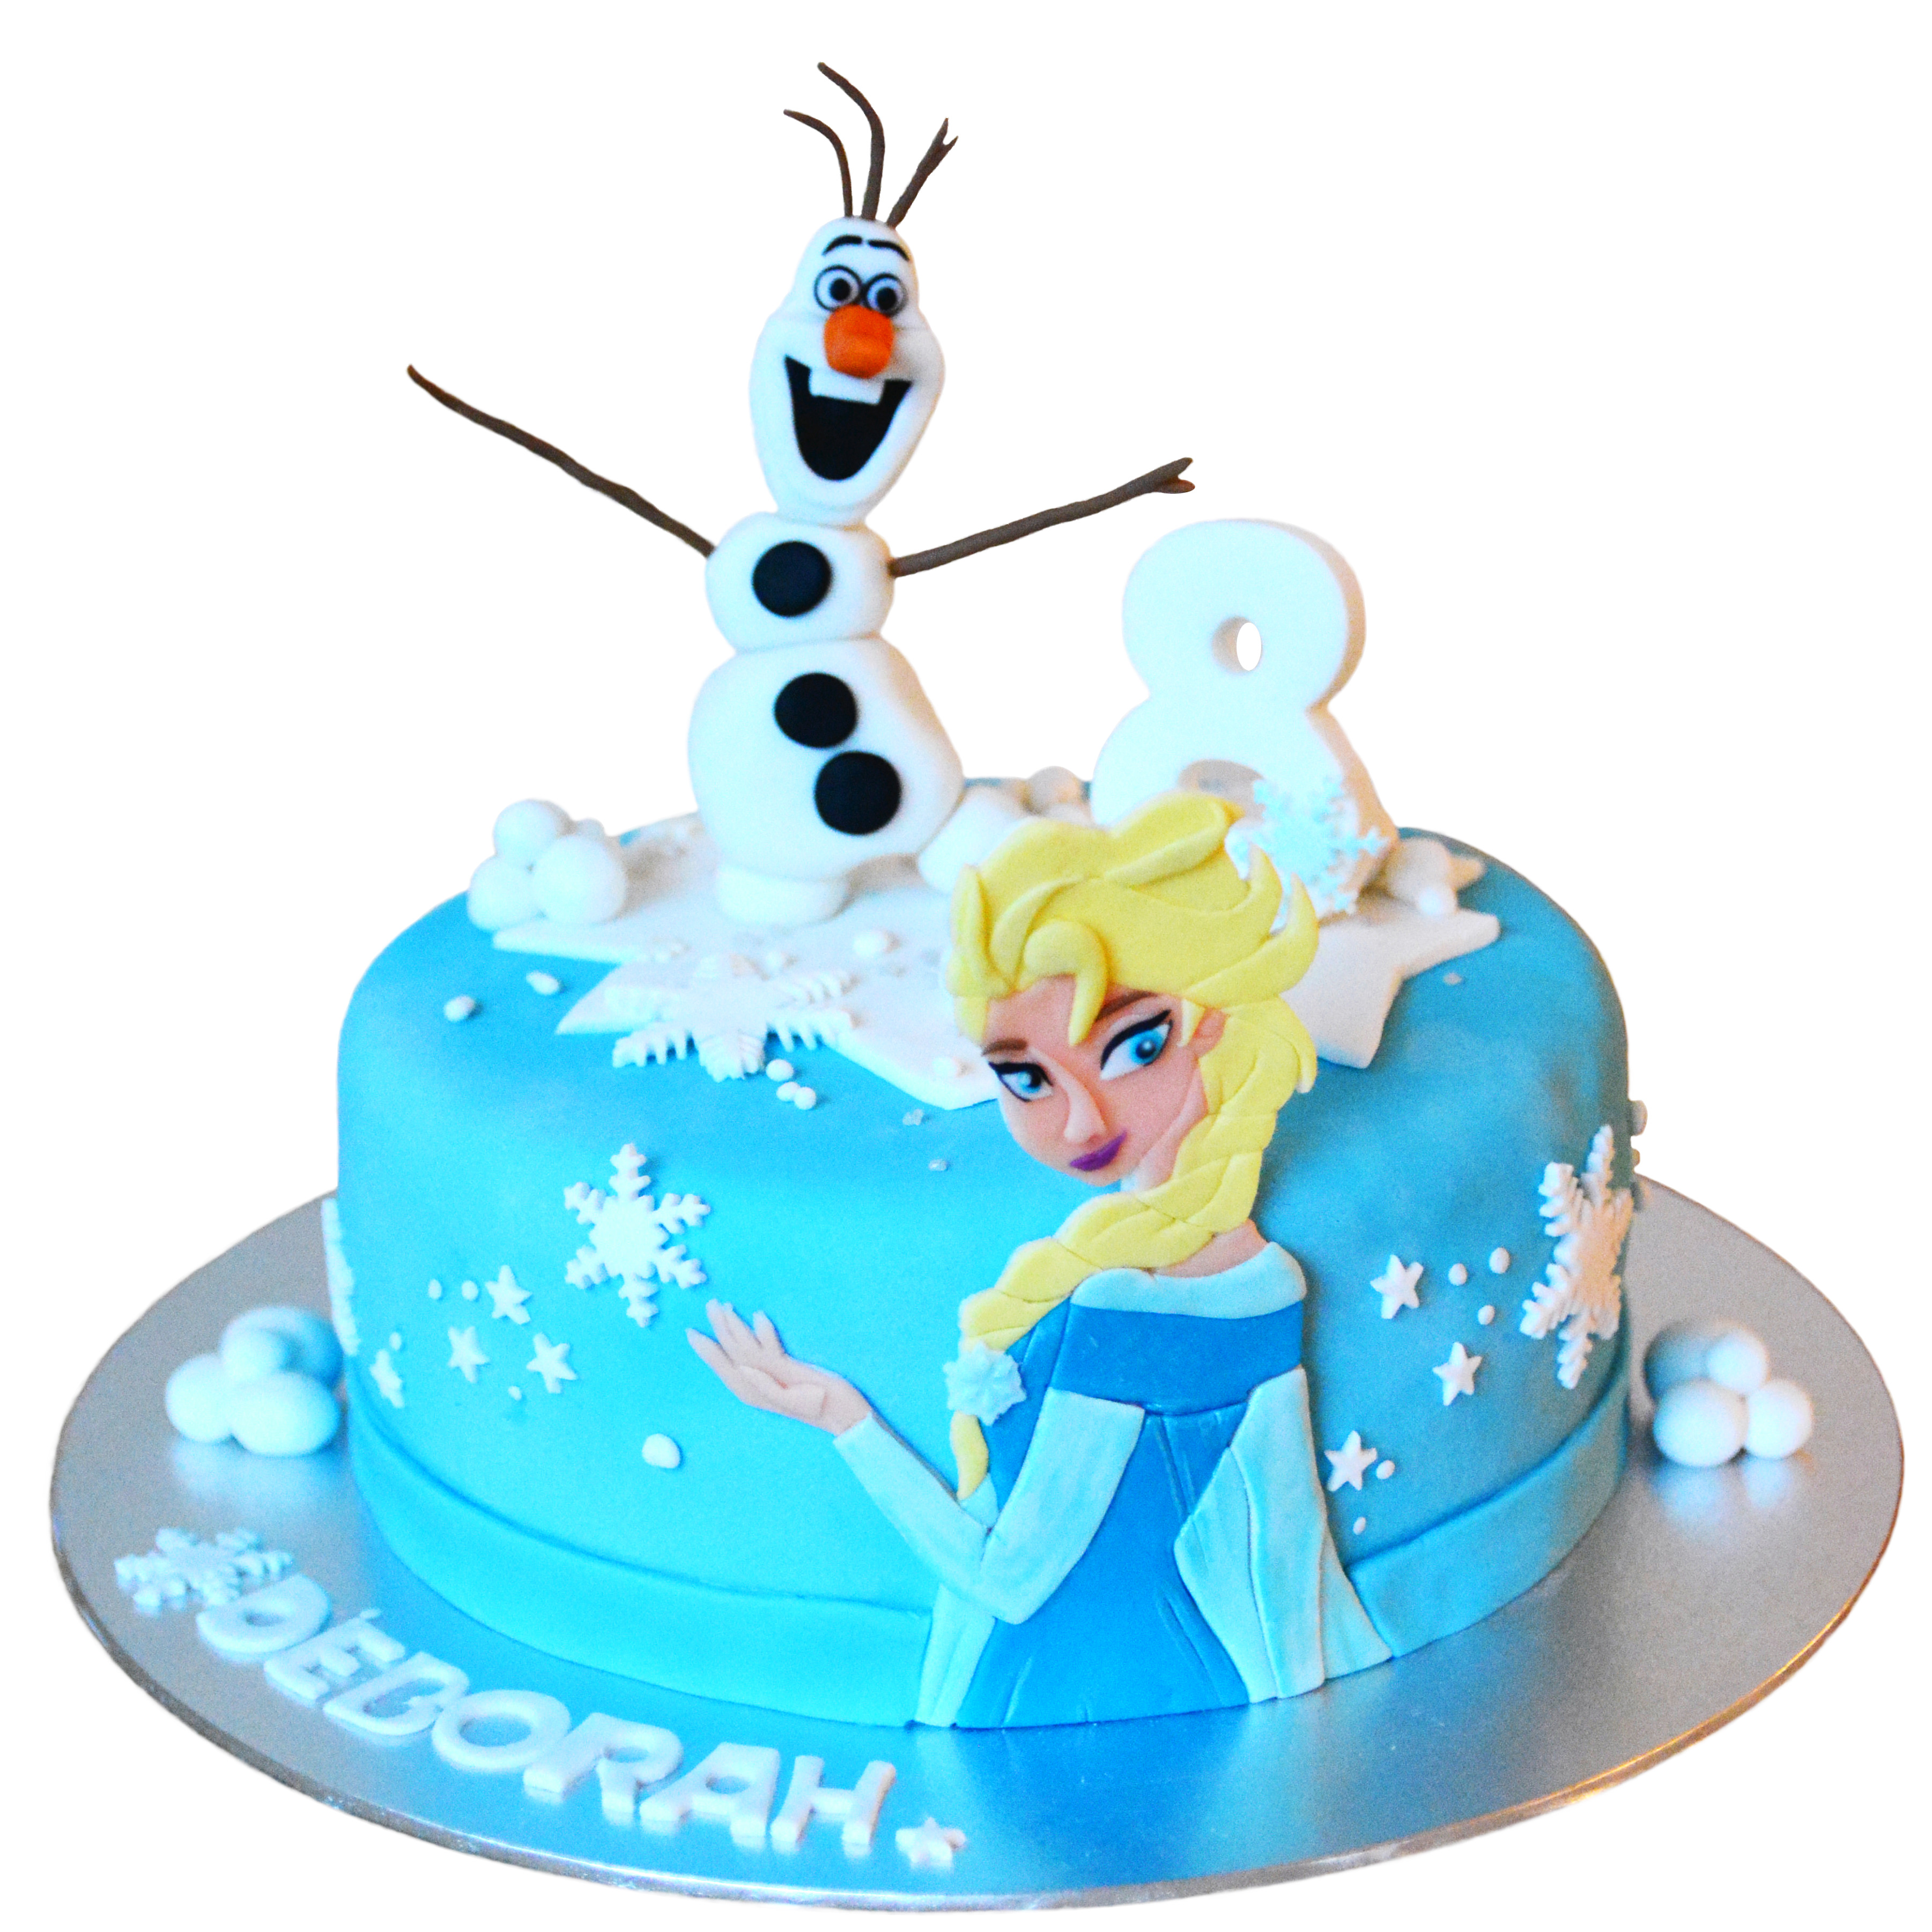 Frozen Medium Cake (1 Floor)